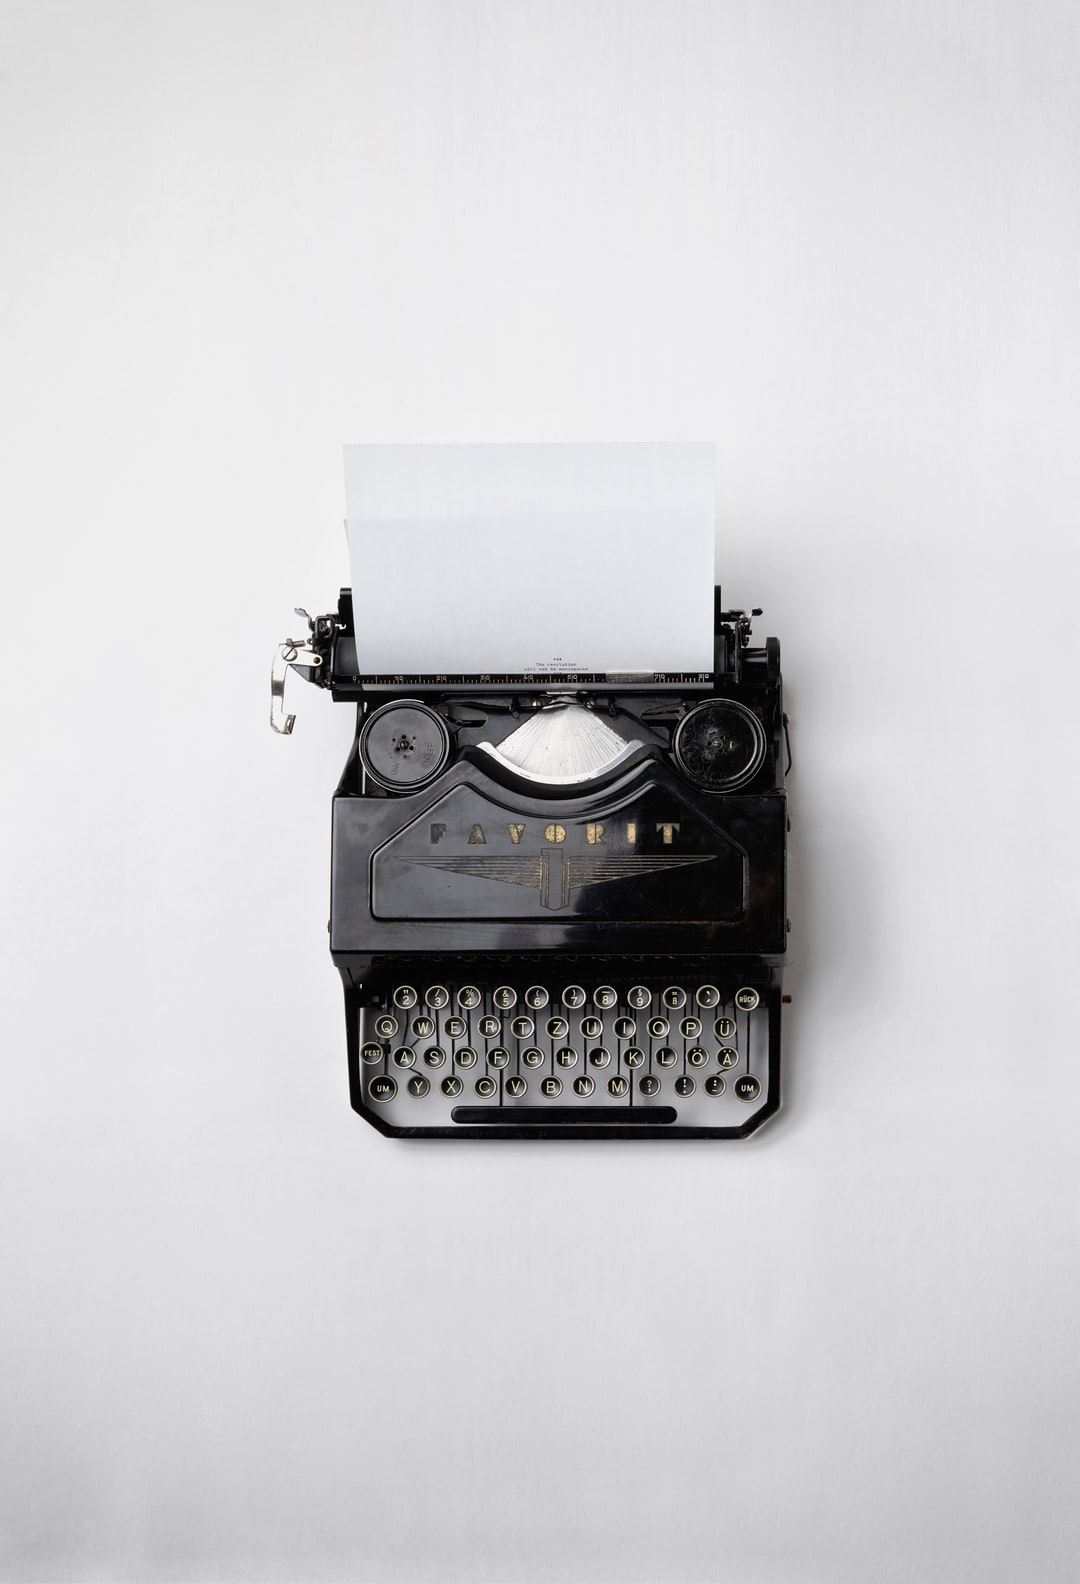 A vintage analogue typewriter with a white plain paper